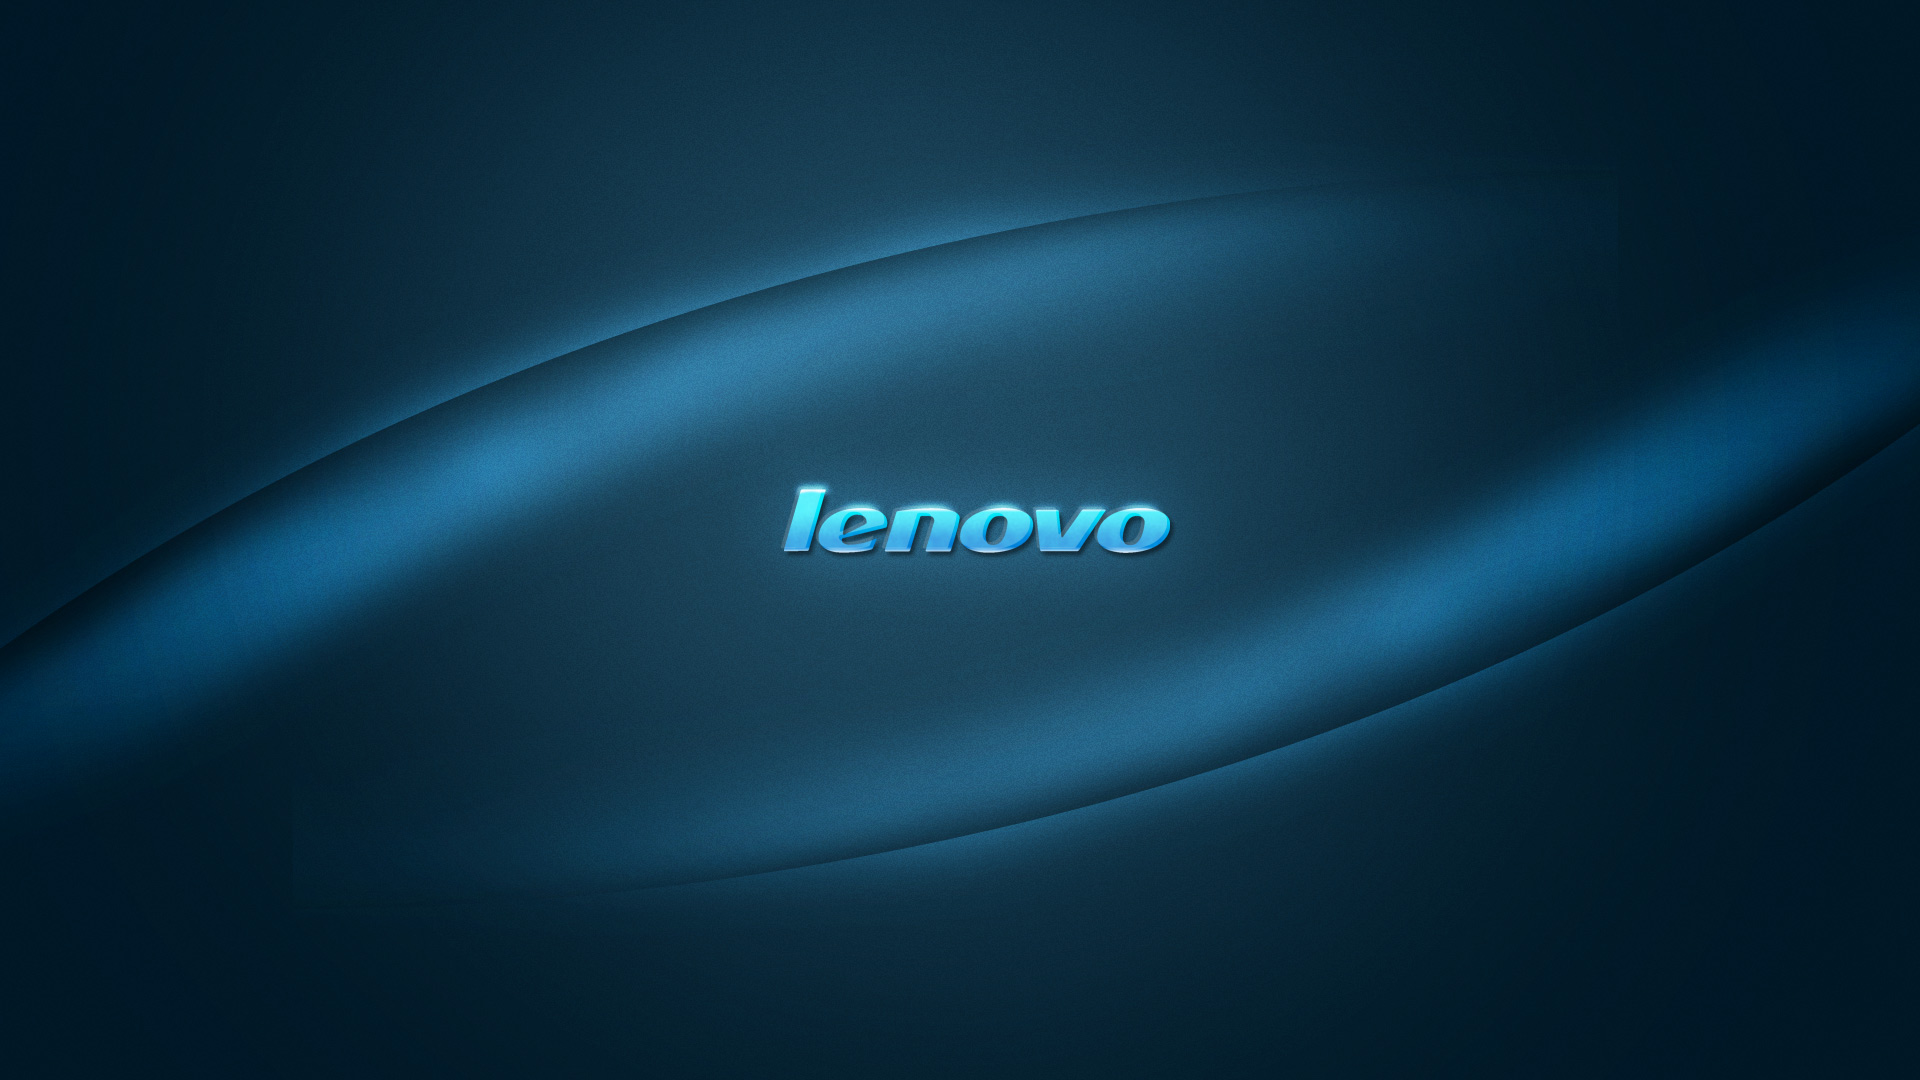 download hr hd wallpapers for laptop lenovo for computer backgrounds 1920x1080